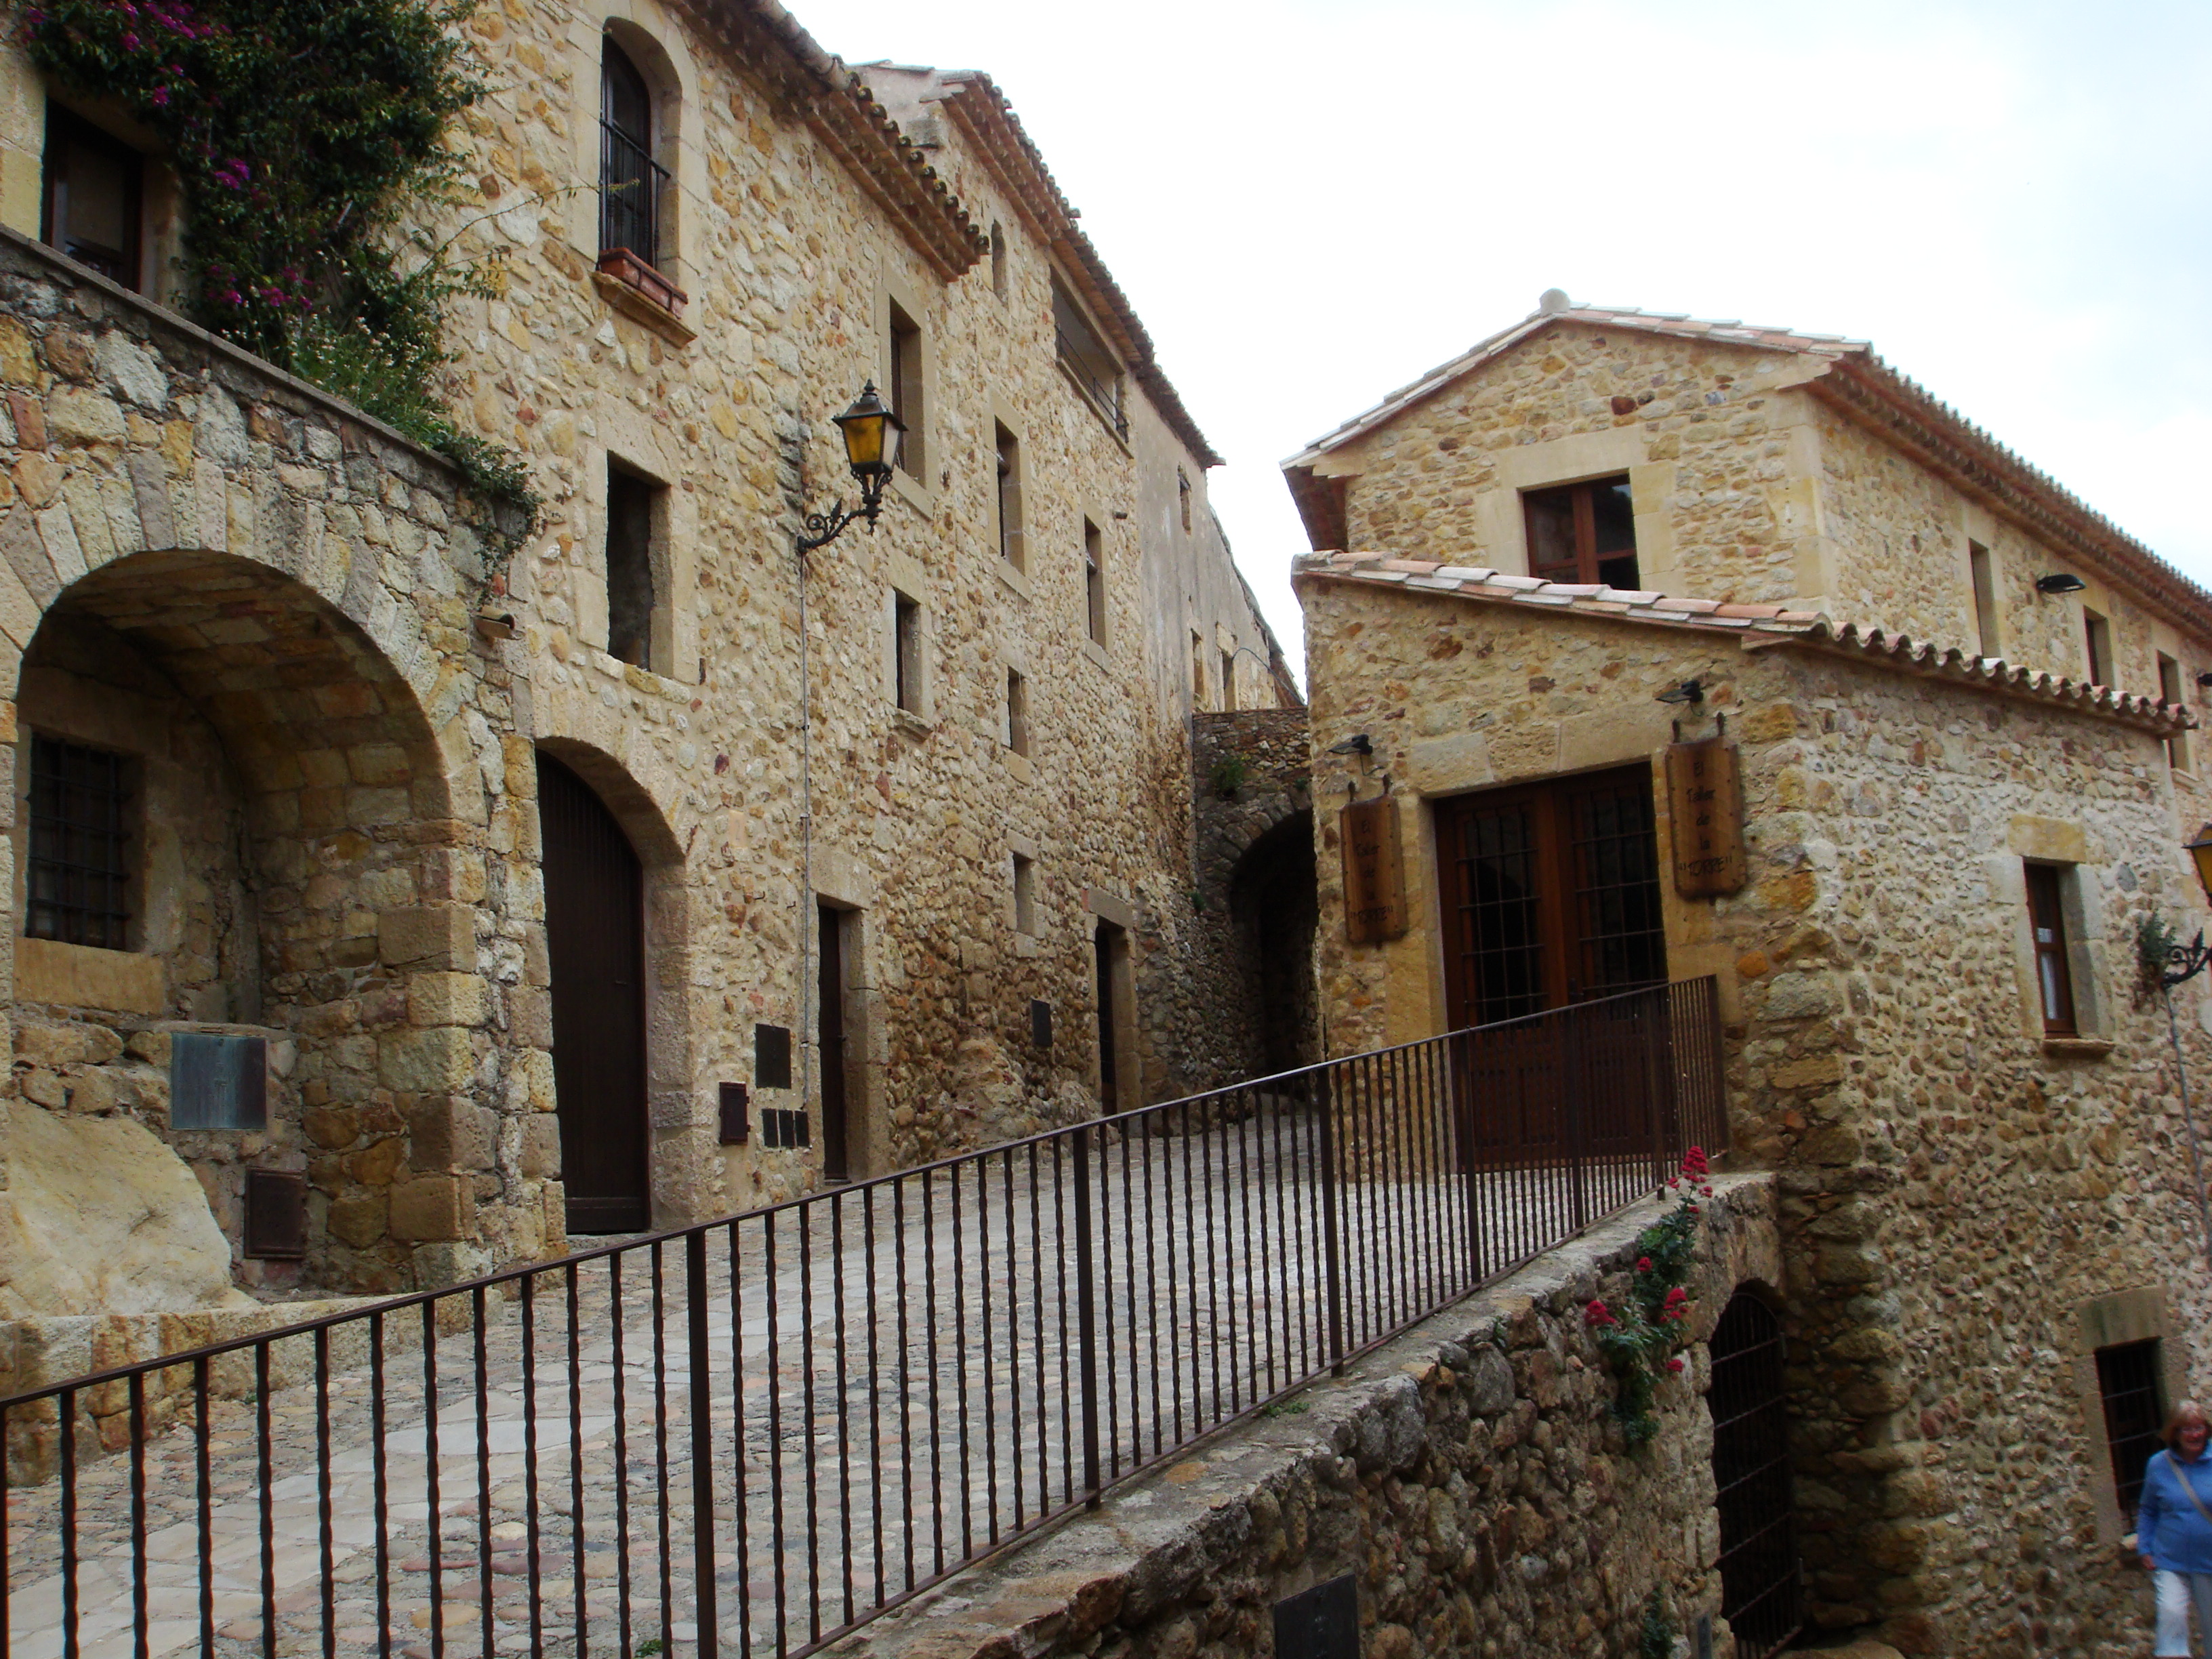 The medieval town of Peratallada, Spain